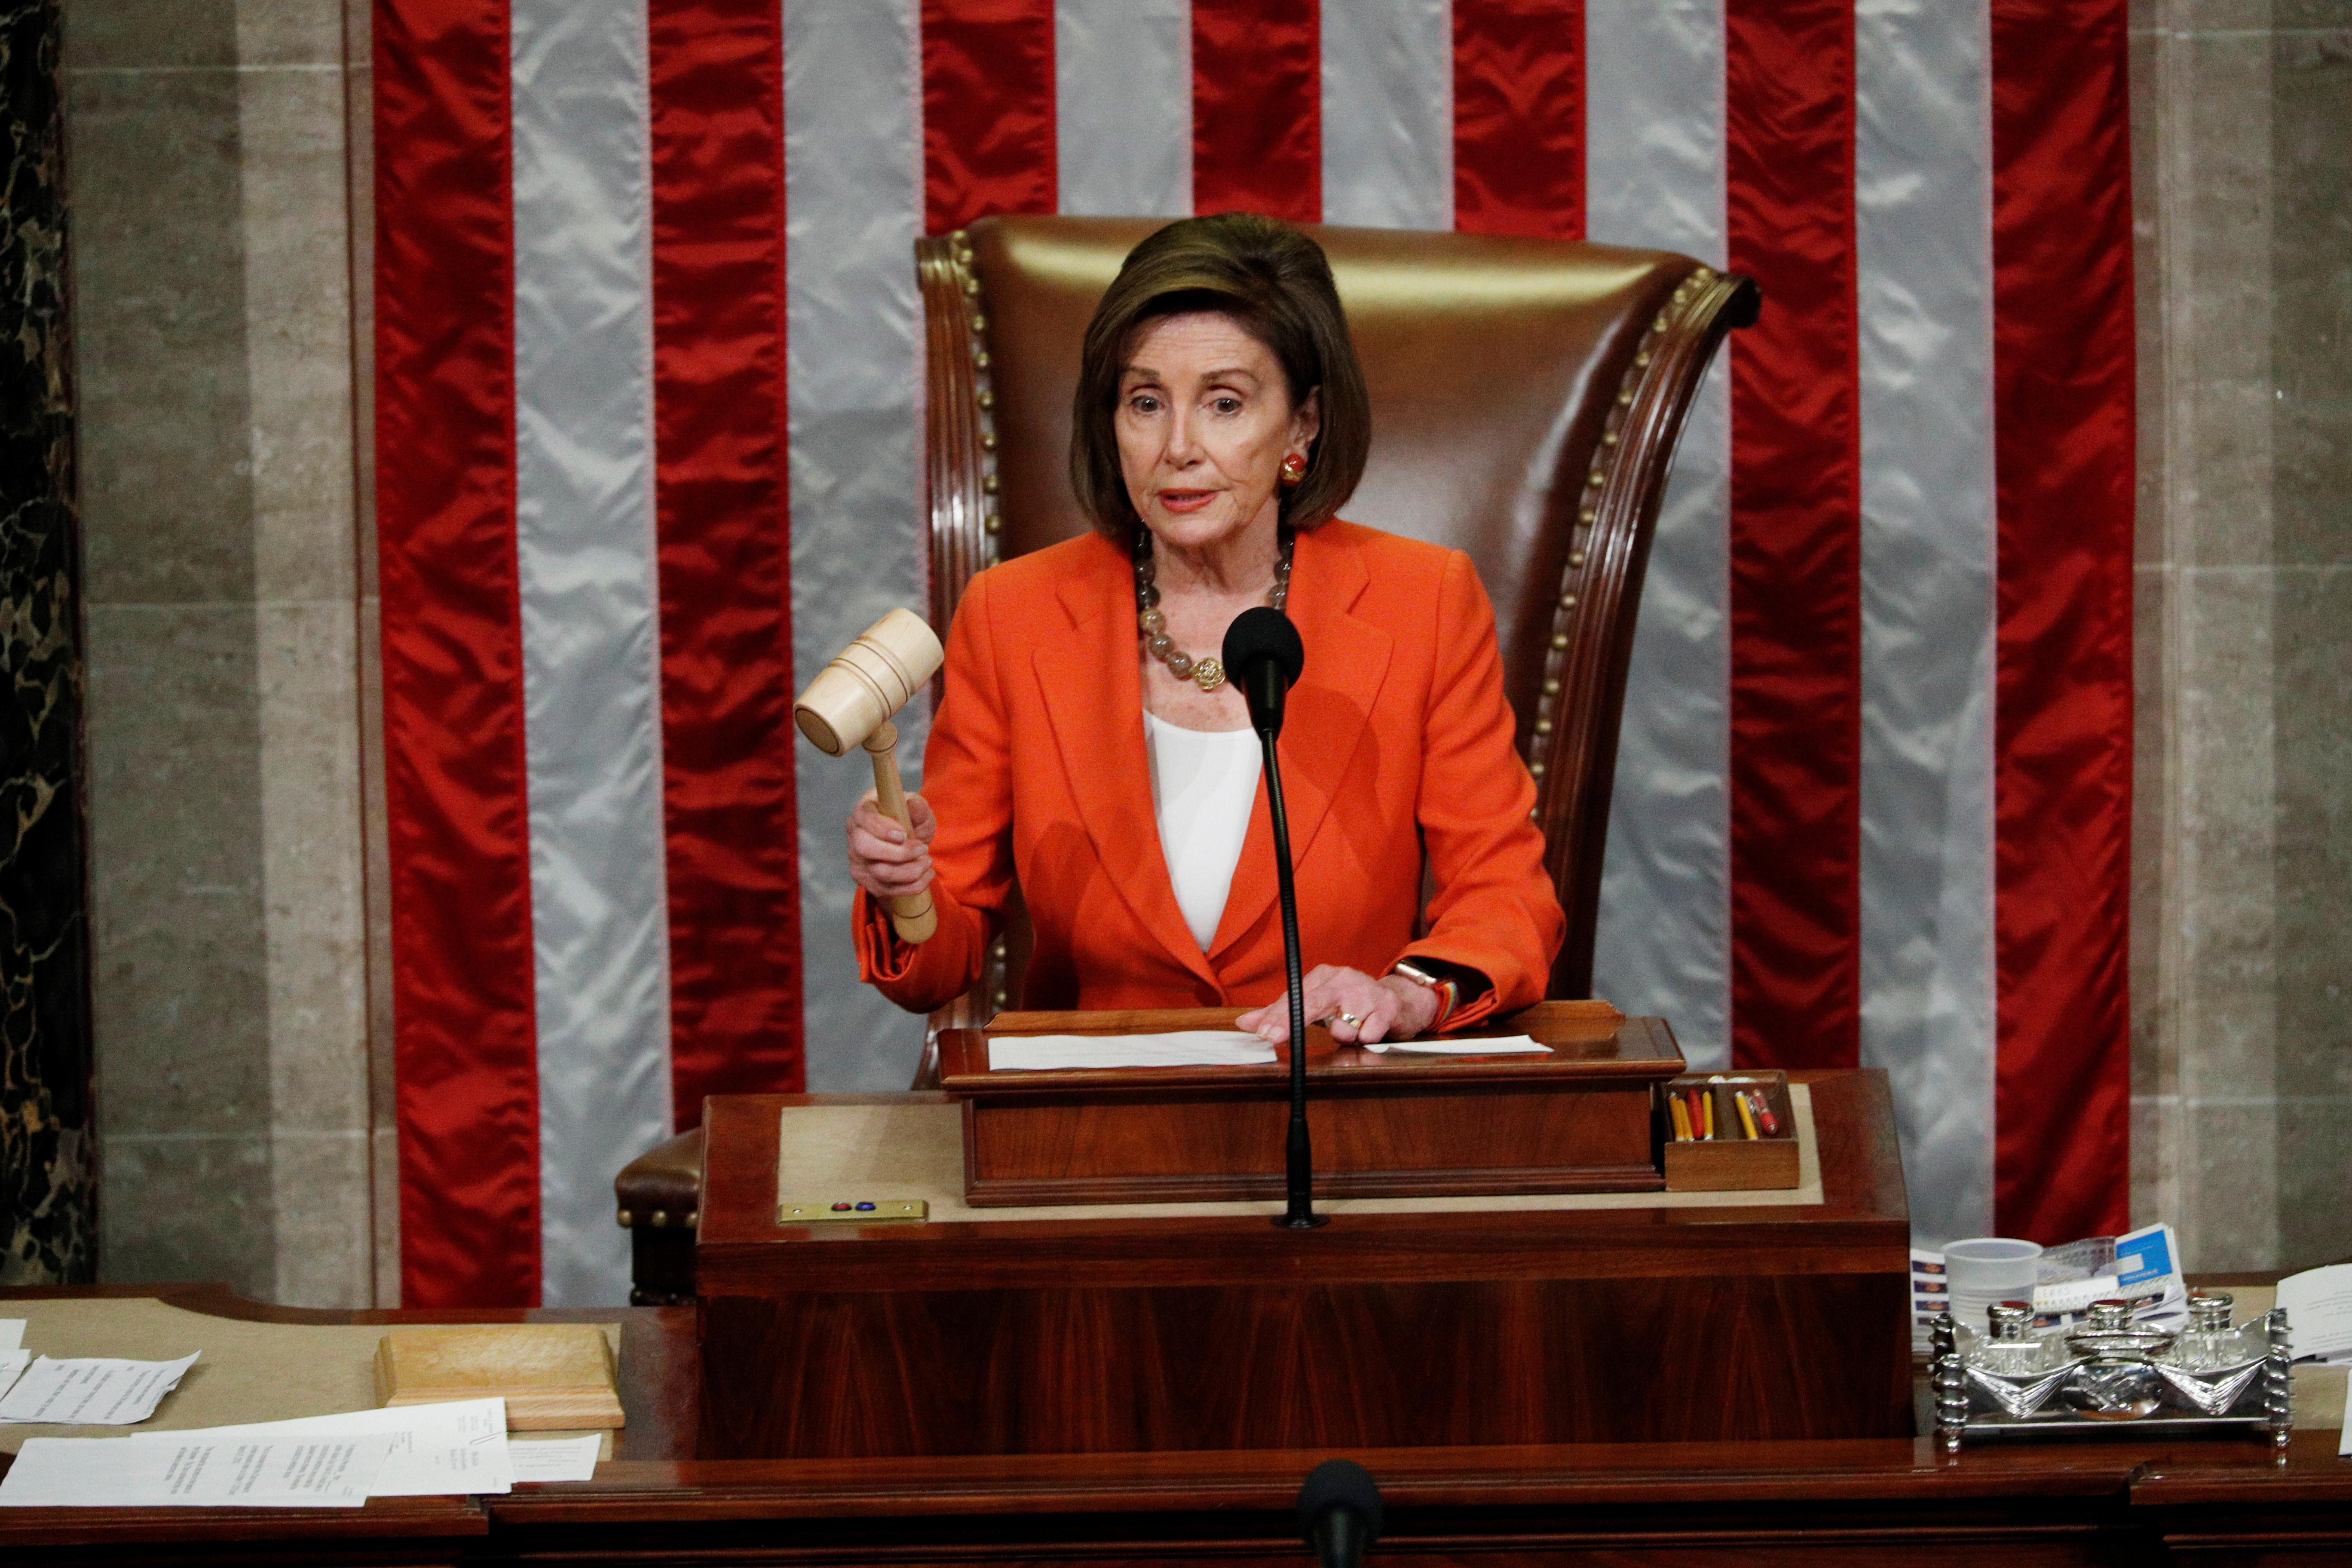 Trump impeachment effort passes first test in divided U.S. Congress